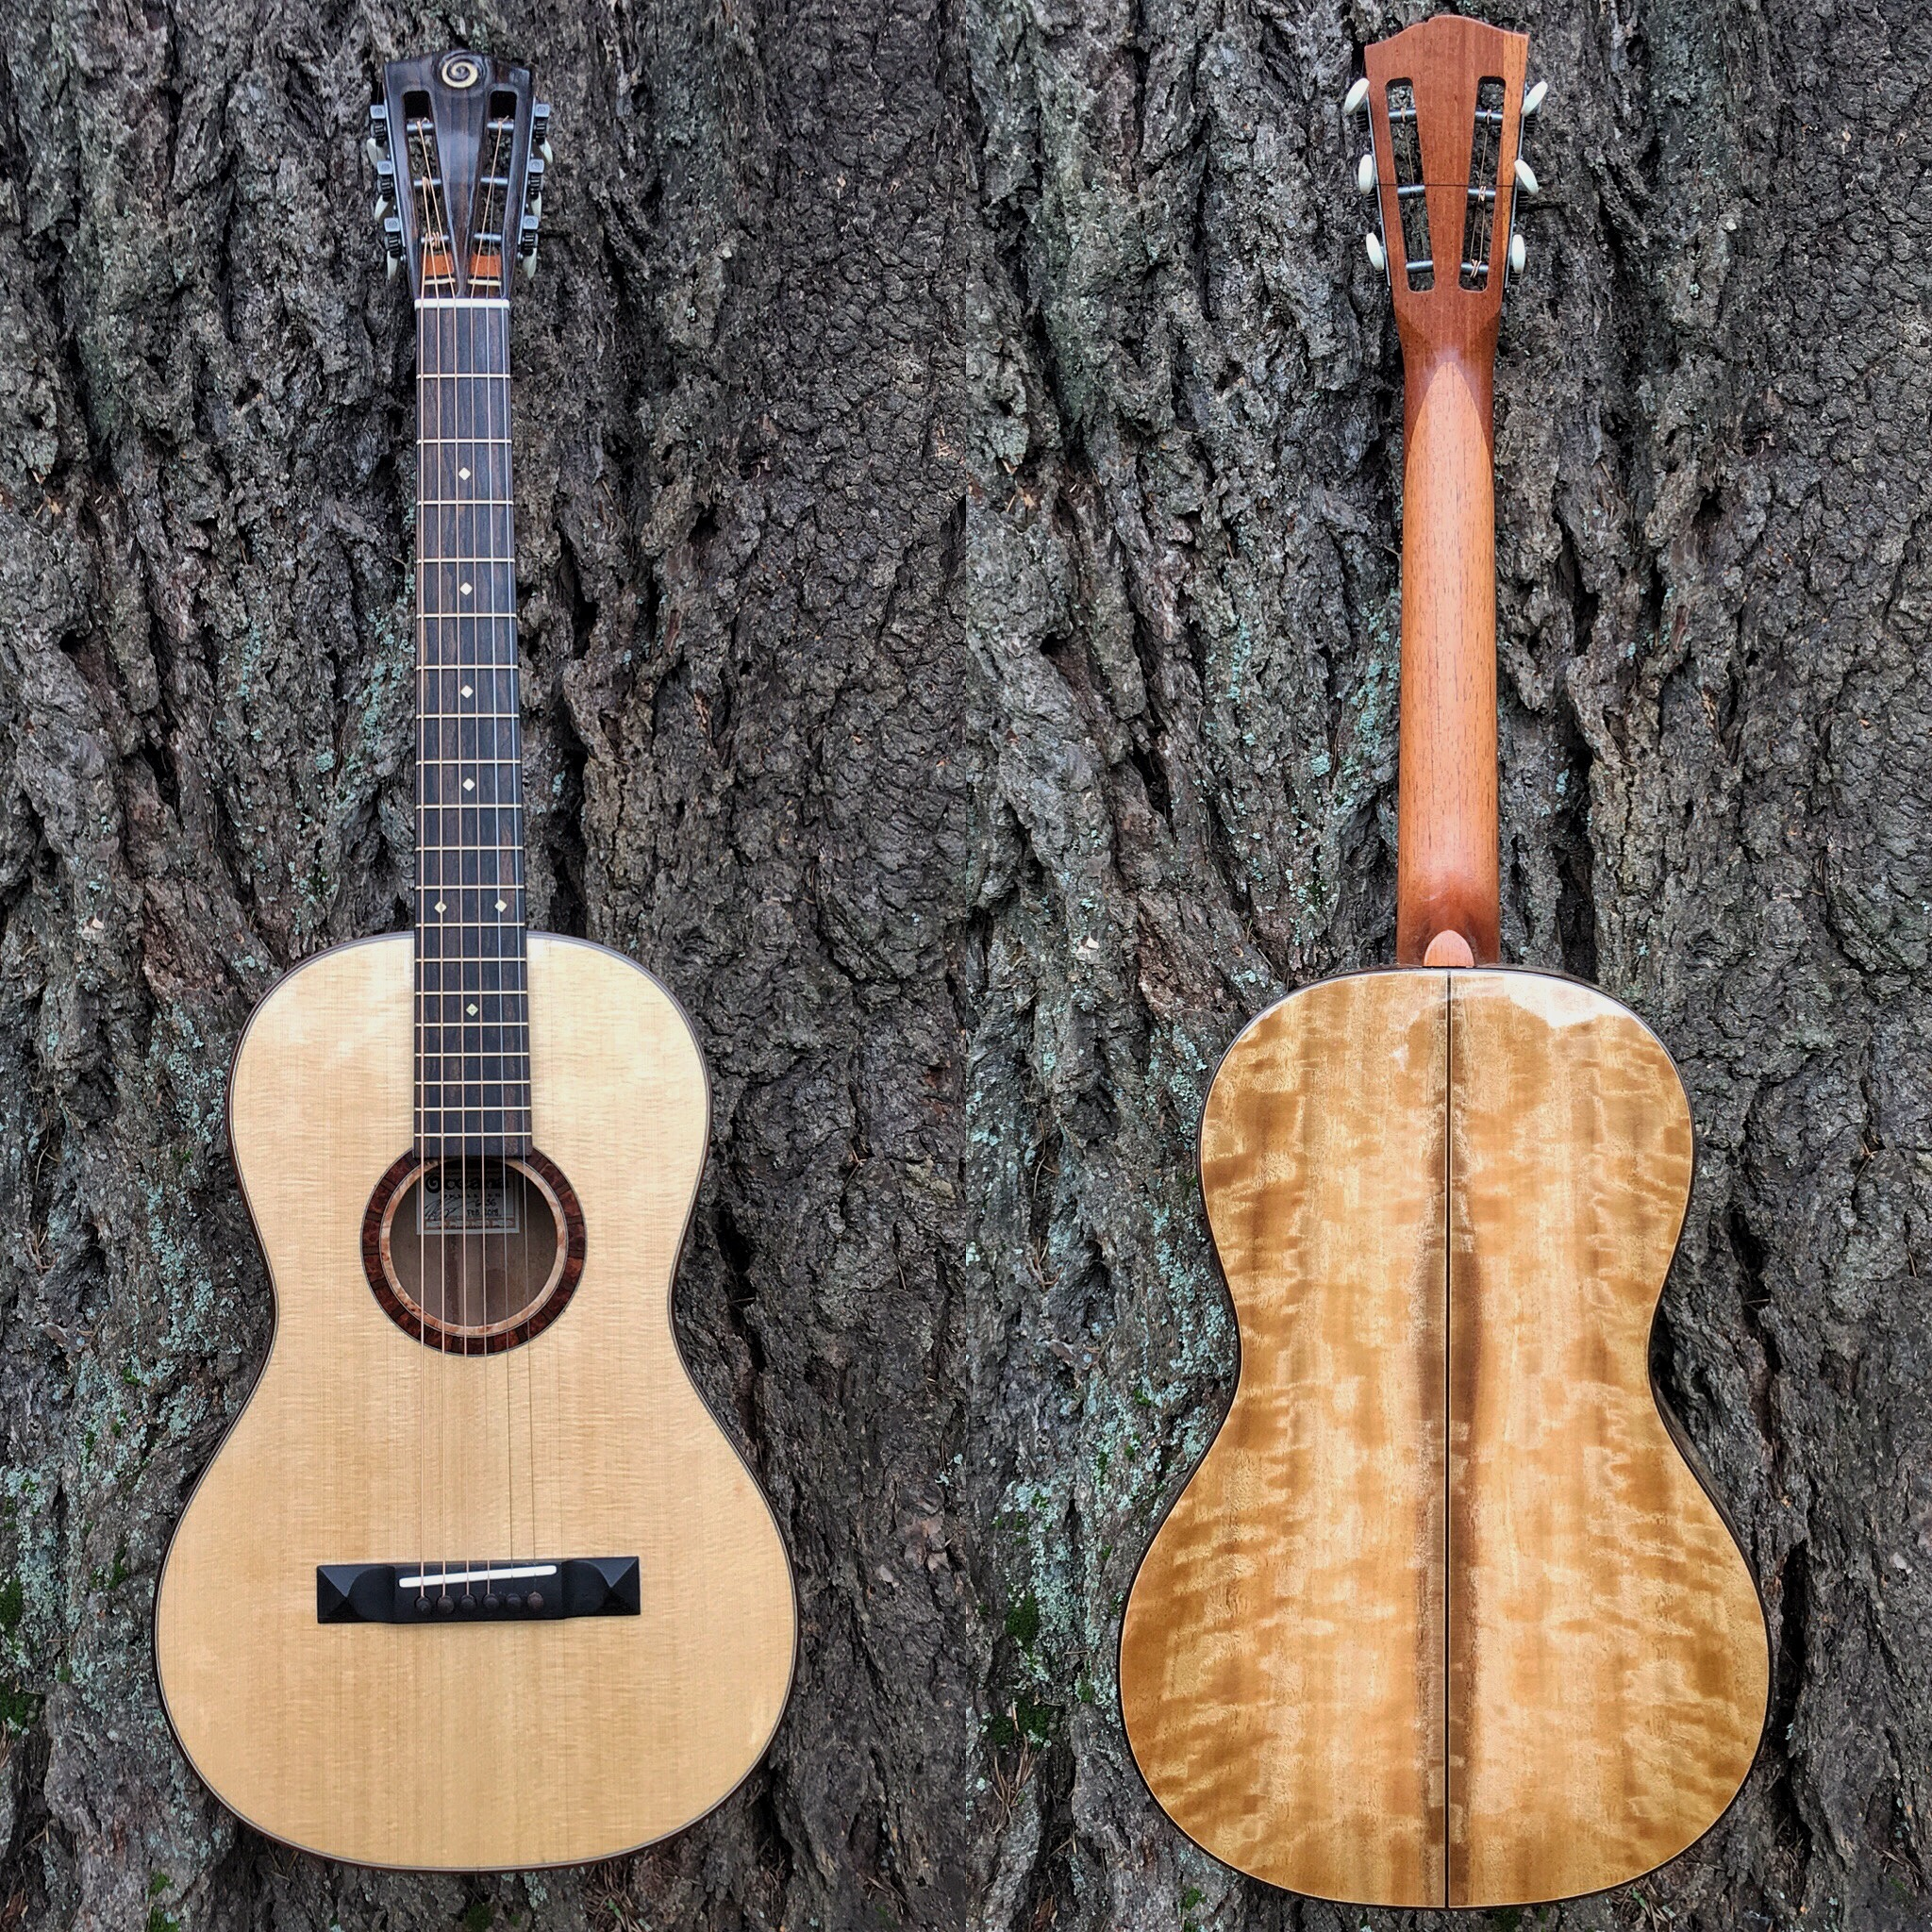 Parlor guitar by Oceana Hand Crafted by Zac Steimle